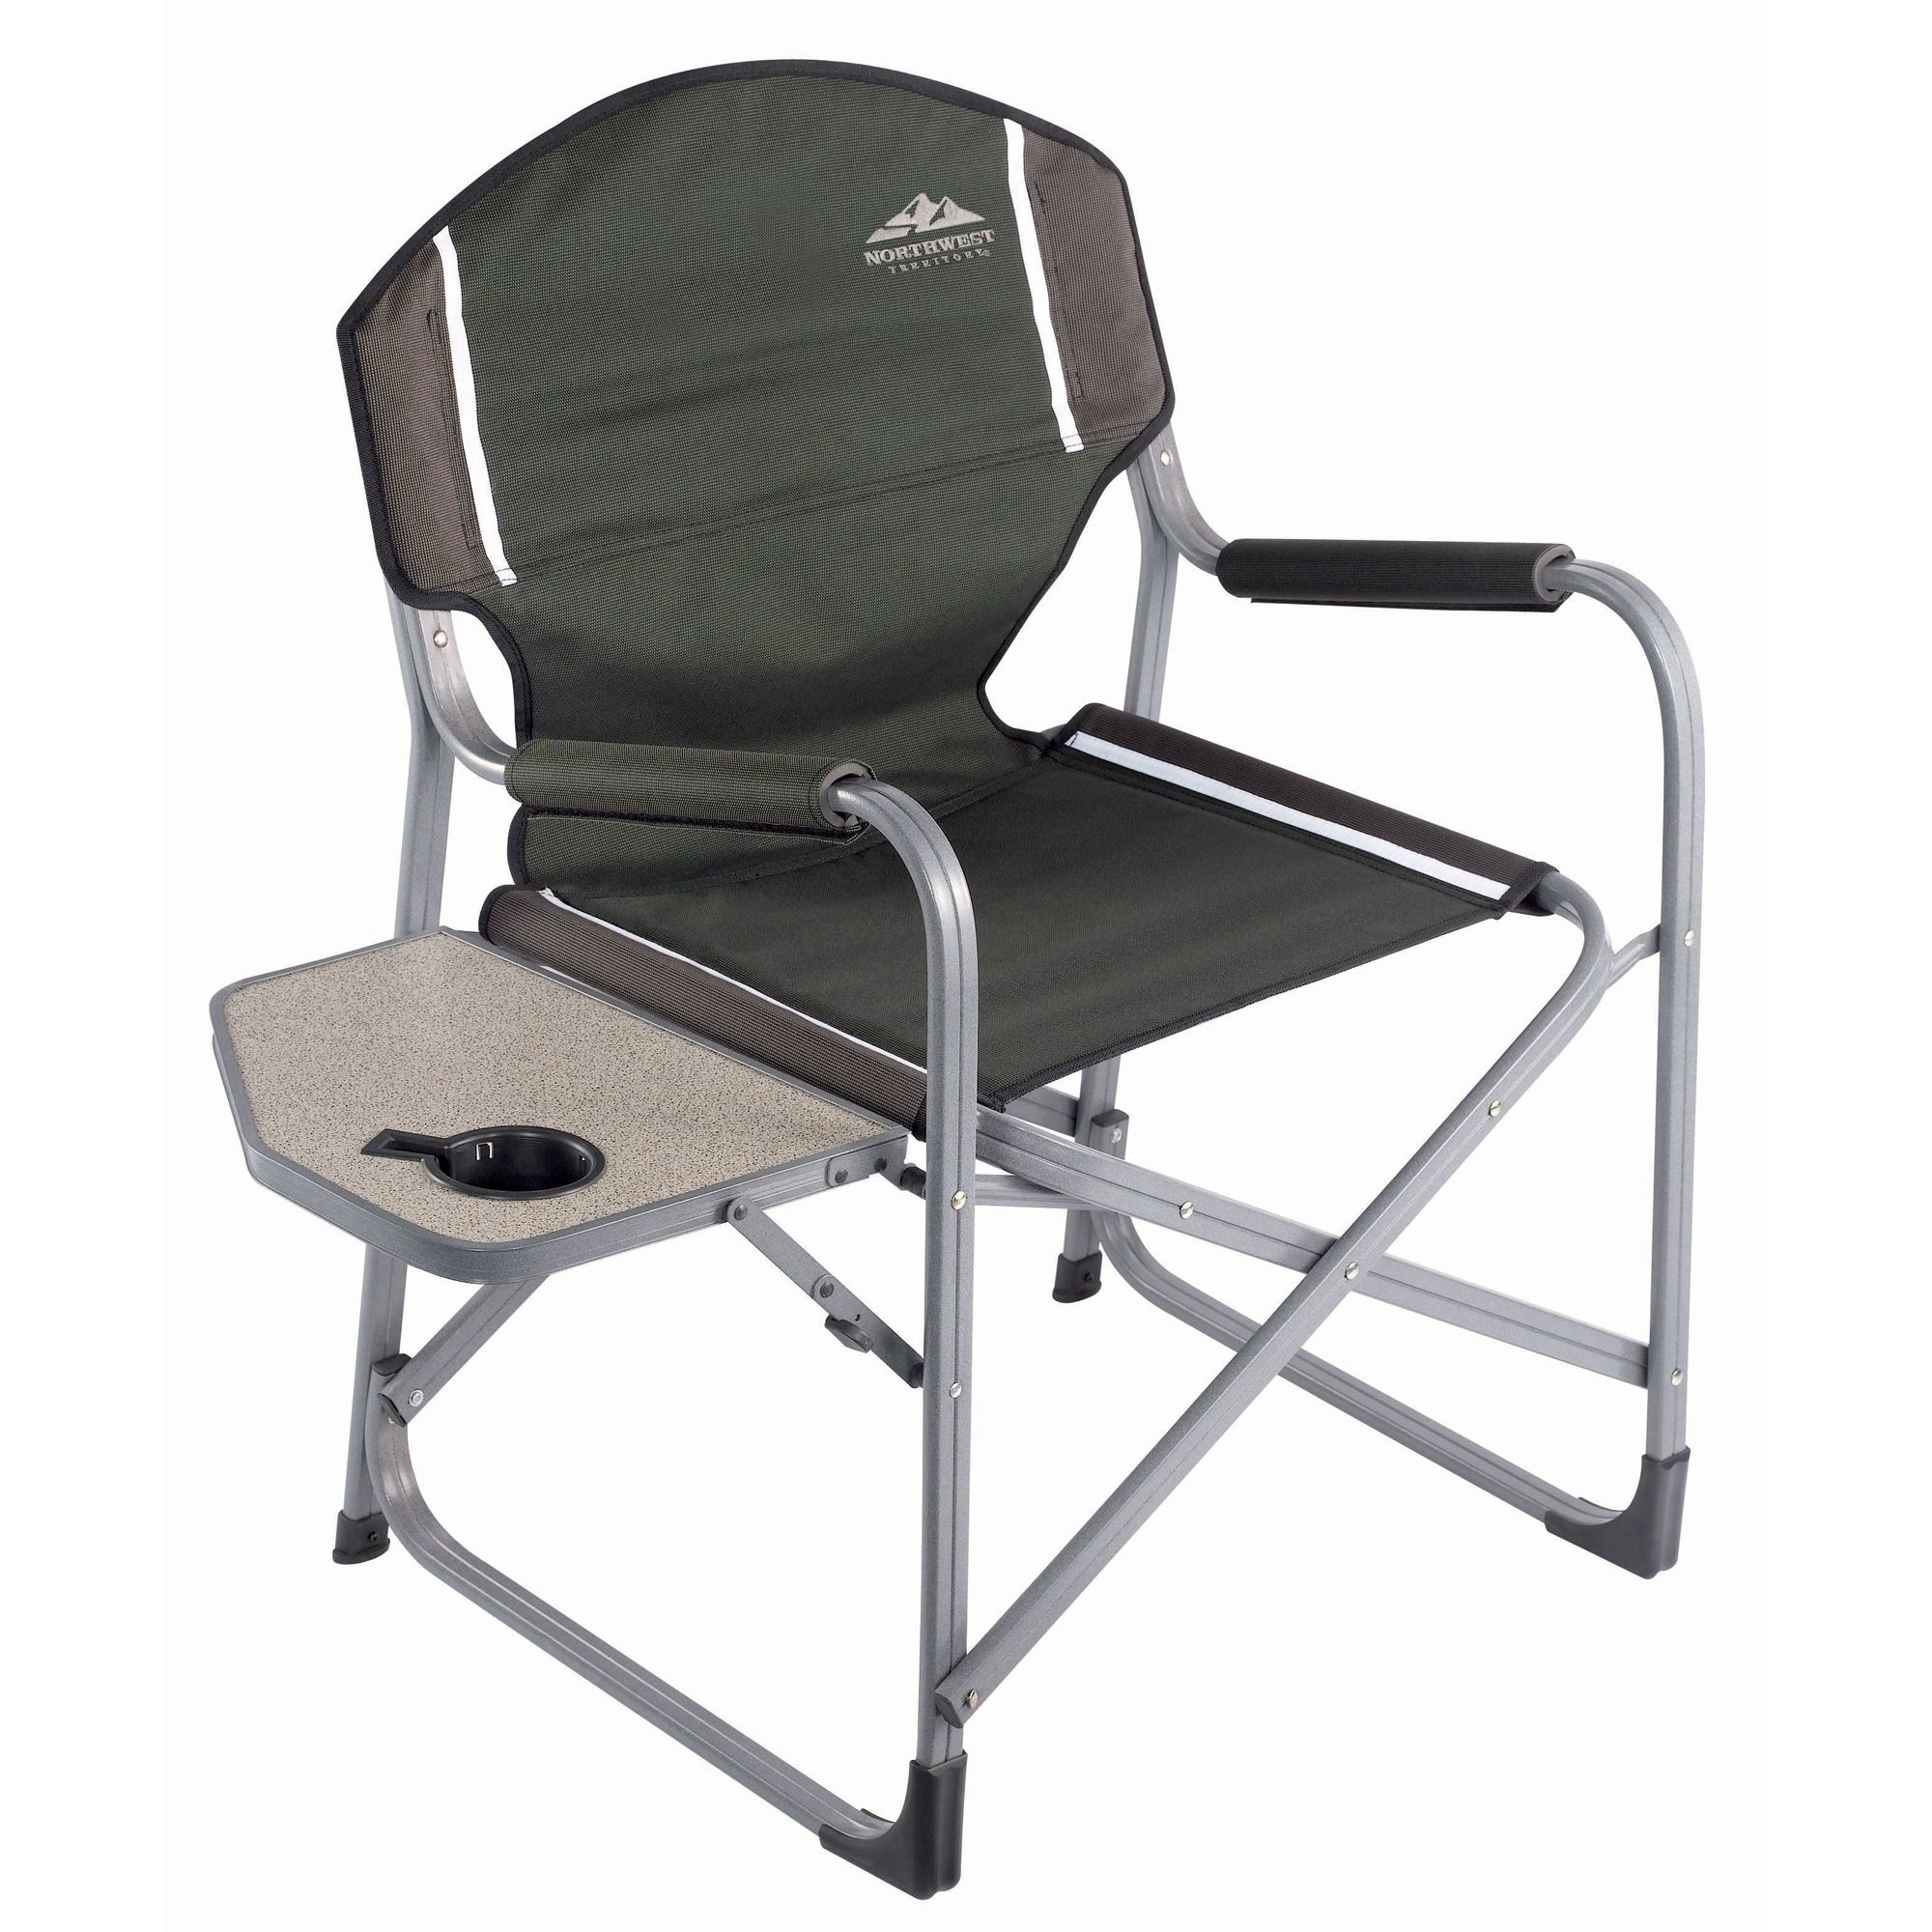 Double Camping Chair Check Out Northwest Territory Director S Camping Chair Shopyourway